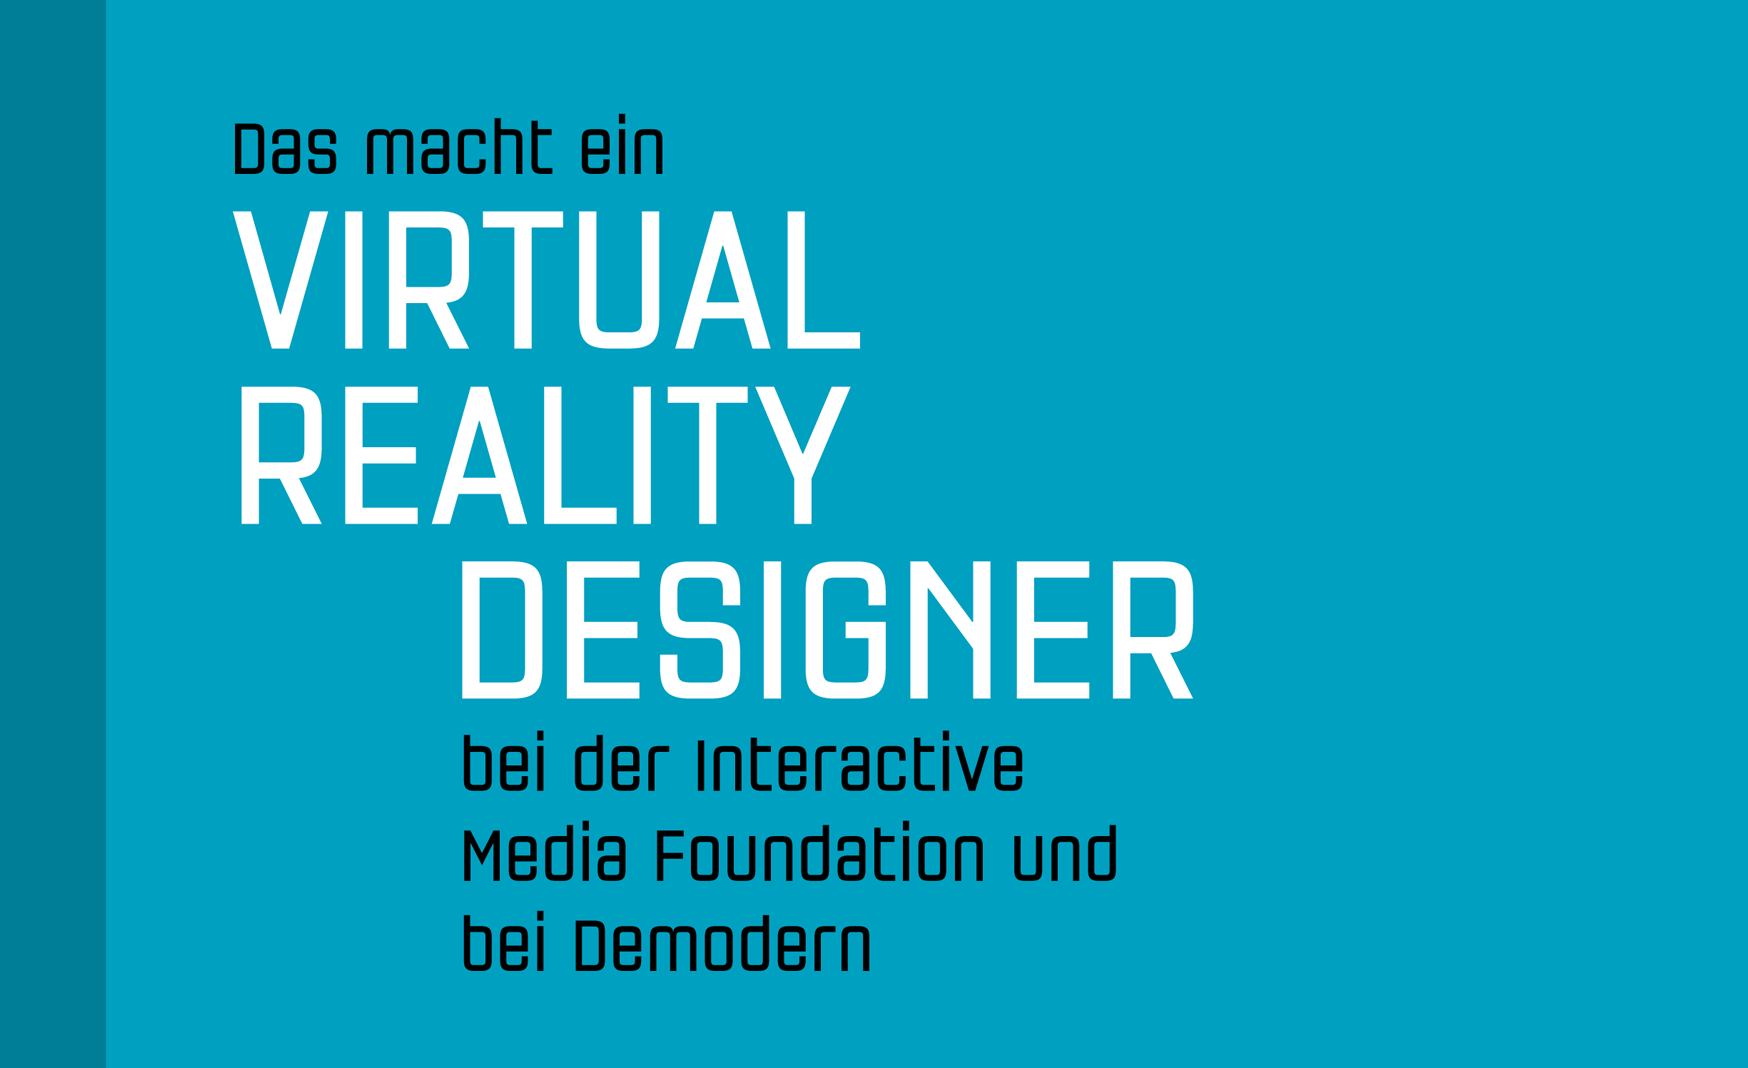 Virtual Reality Design bei der Interactive Media Foundation und Demodern